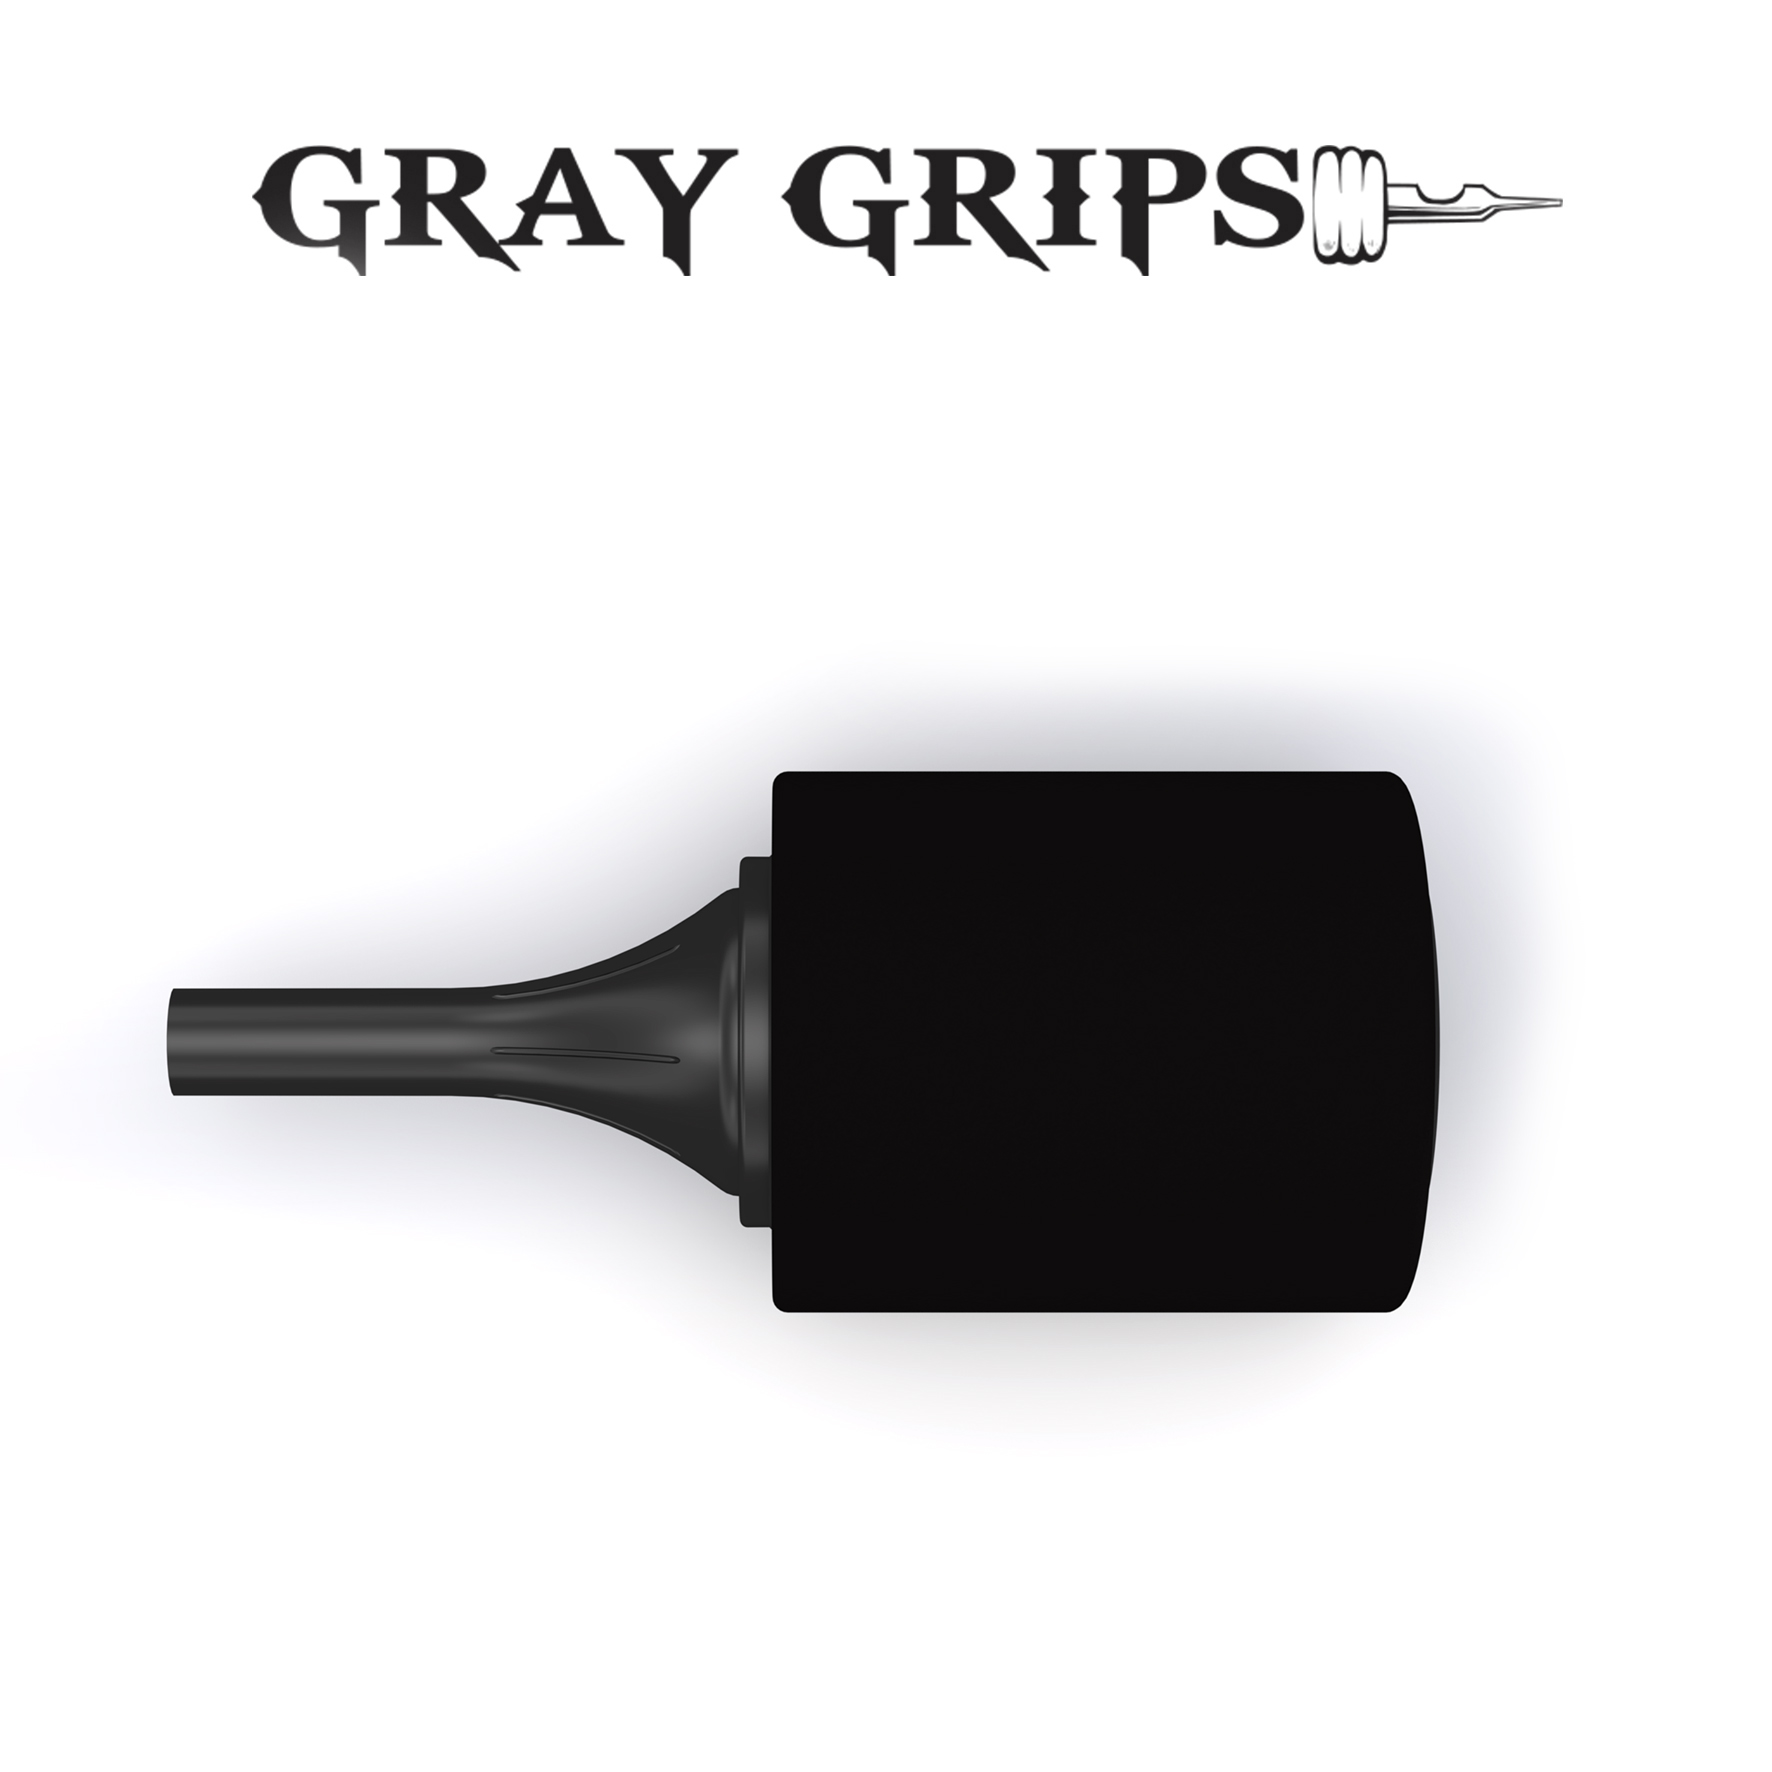 GRAY GRIPS MEMORY FOAM CARTRIDGE GRIP